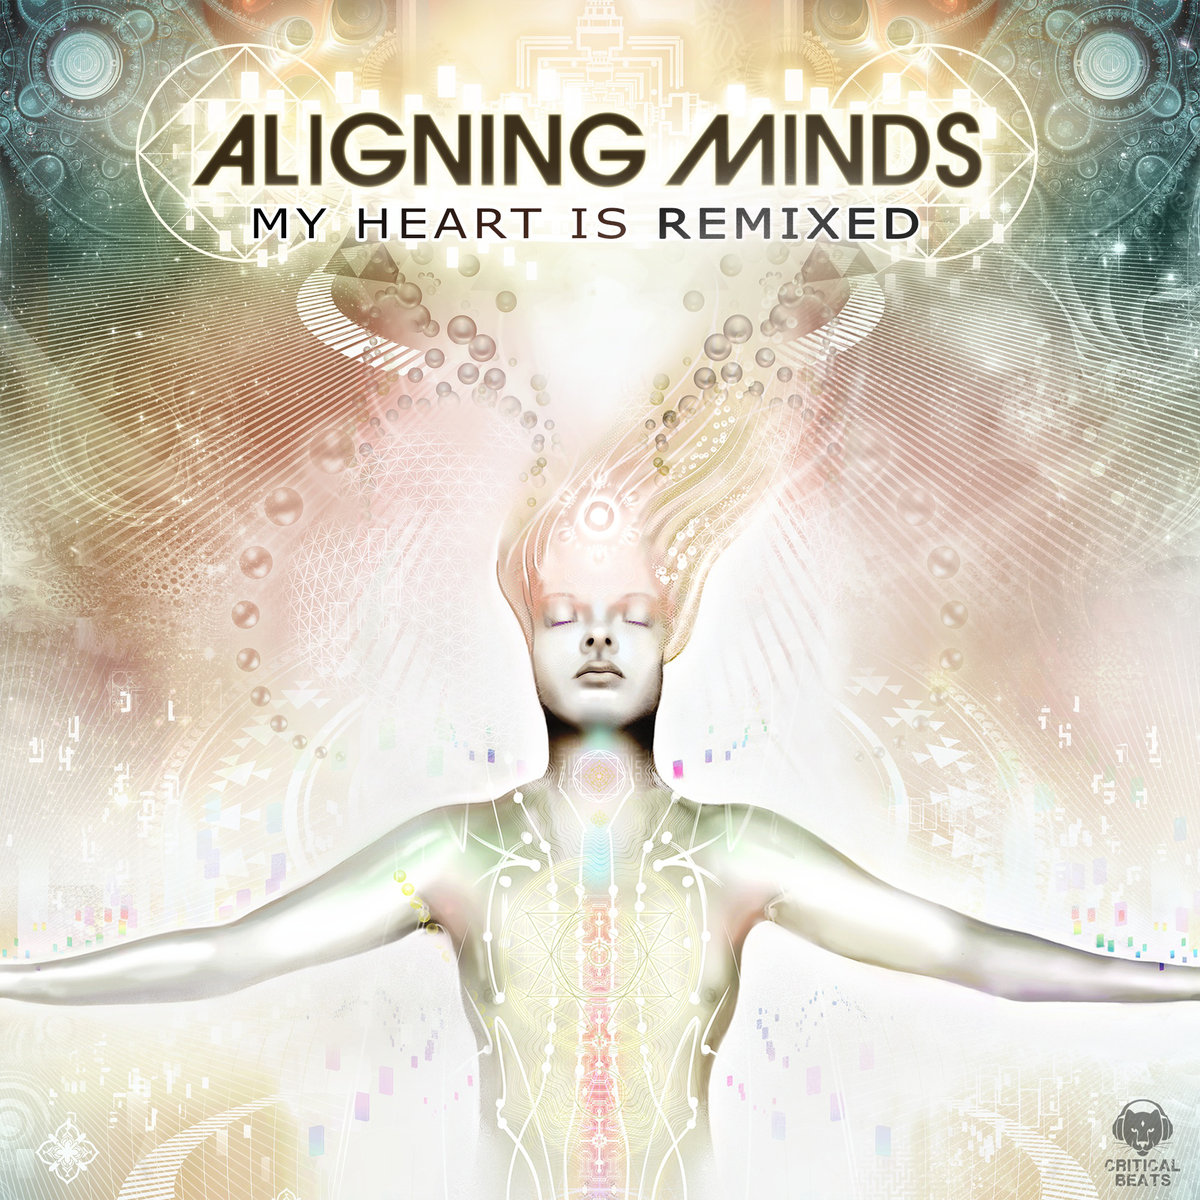 Aligning Minds - Weeping Willow (Ayrun Remix) @ 'My Heart Is Remixed' album (asheville, baltimore)